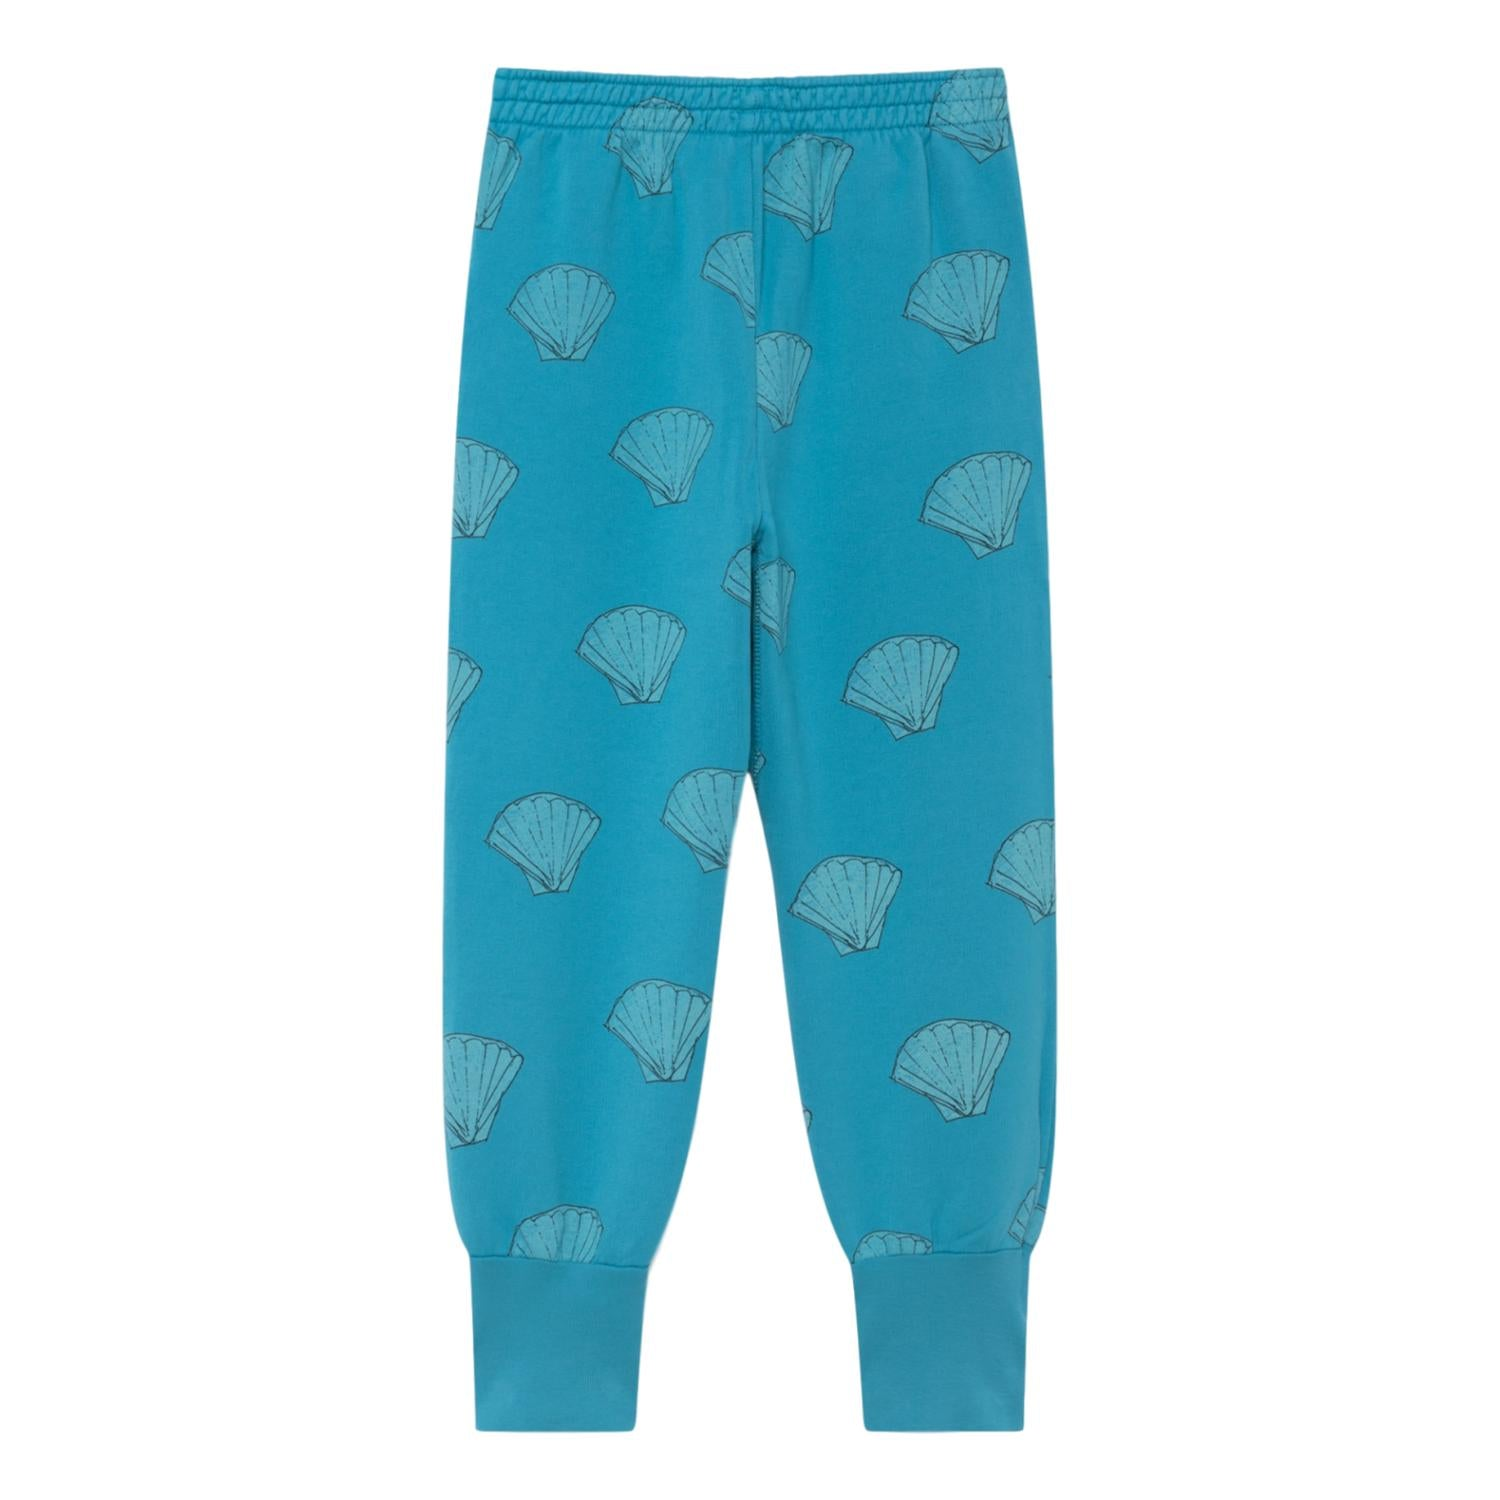 THE ANIMALS OBSERVATORY - Blue Shells Panther Kids Pants